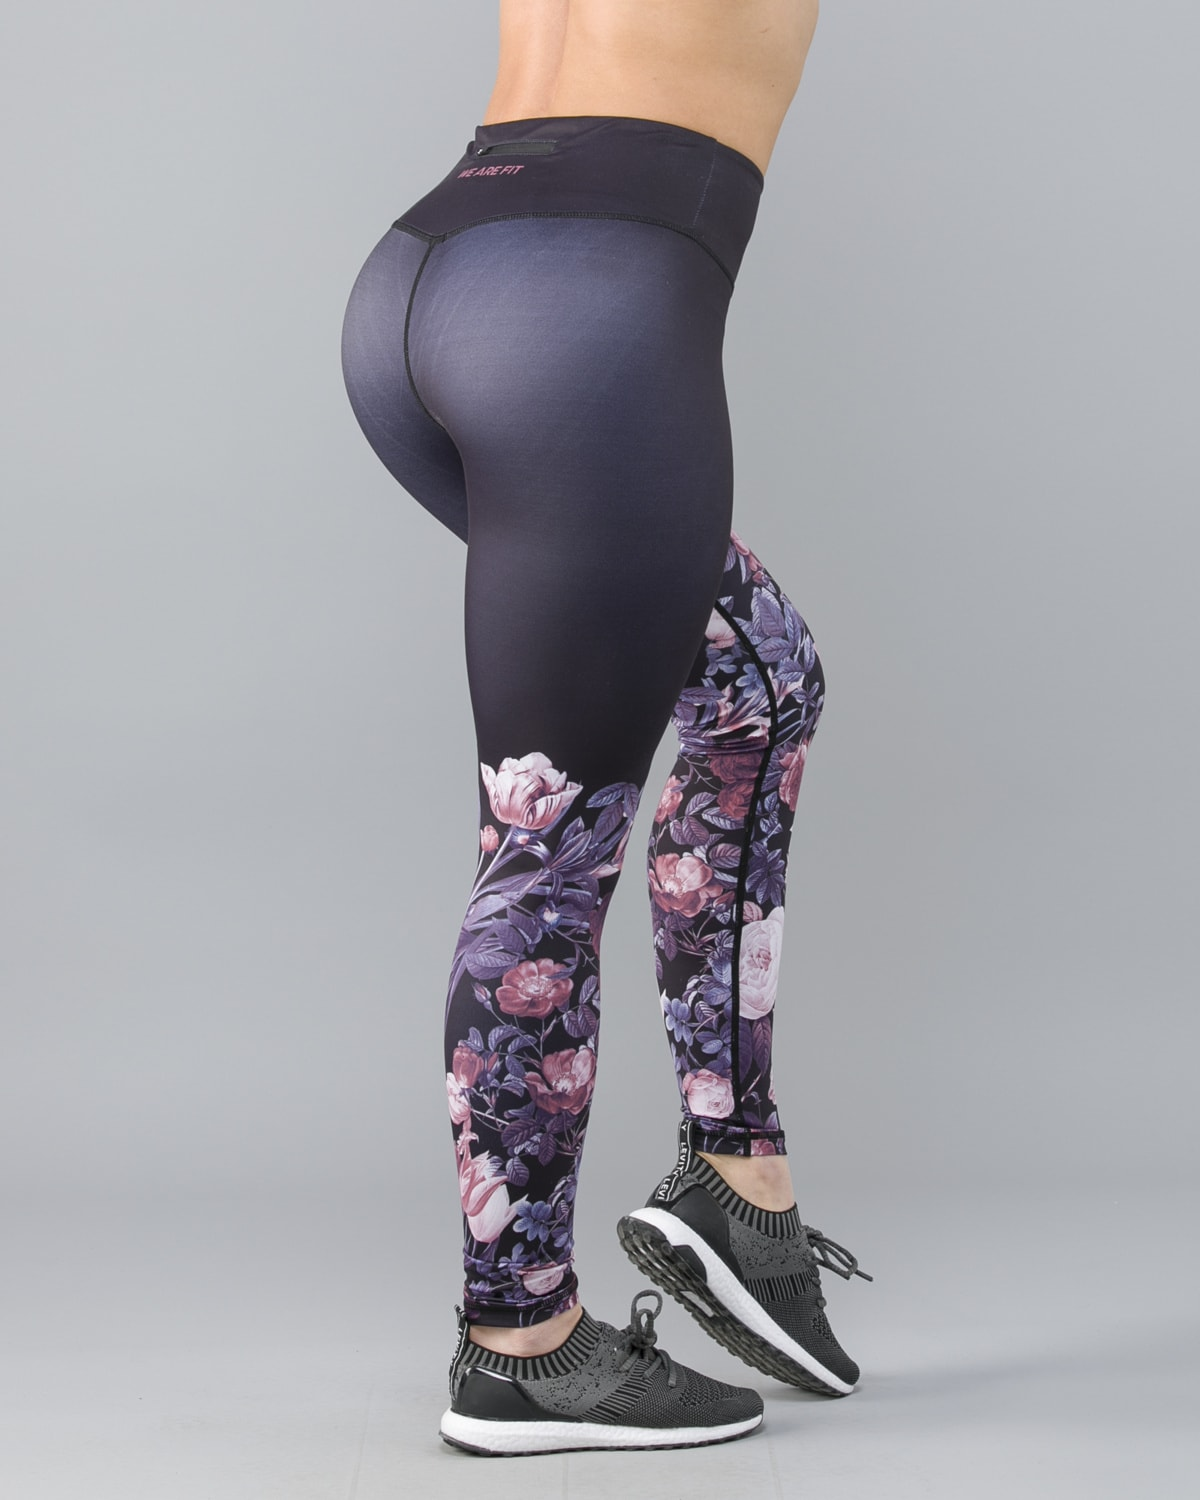 We-Are-Fit-Shea-Tights3